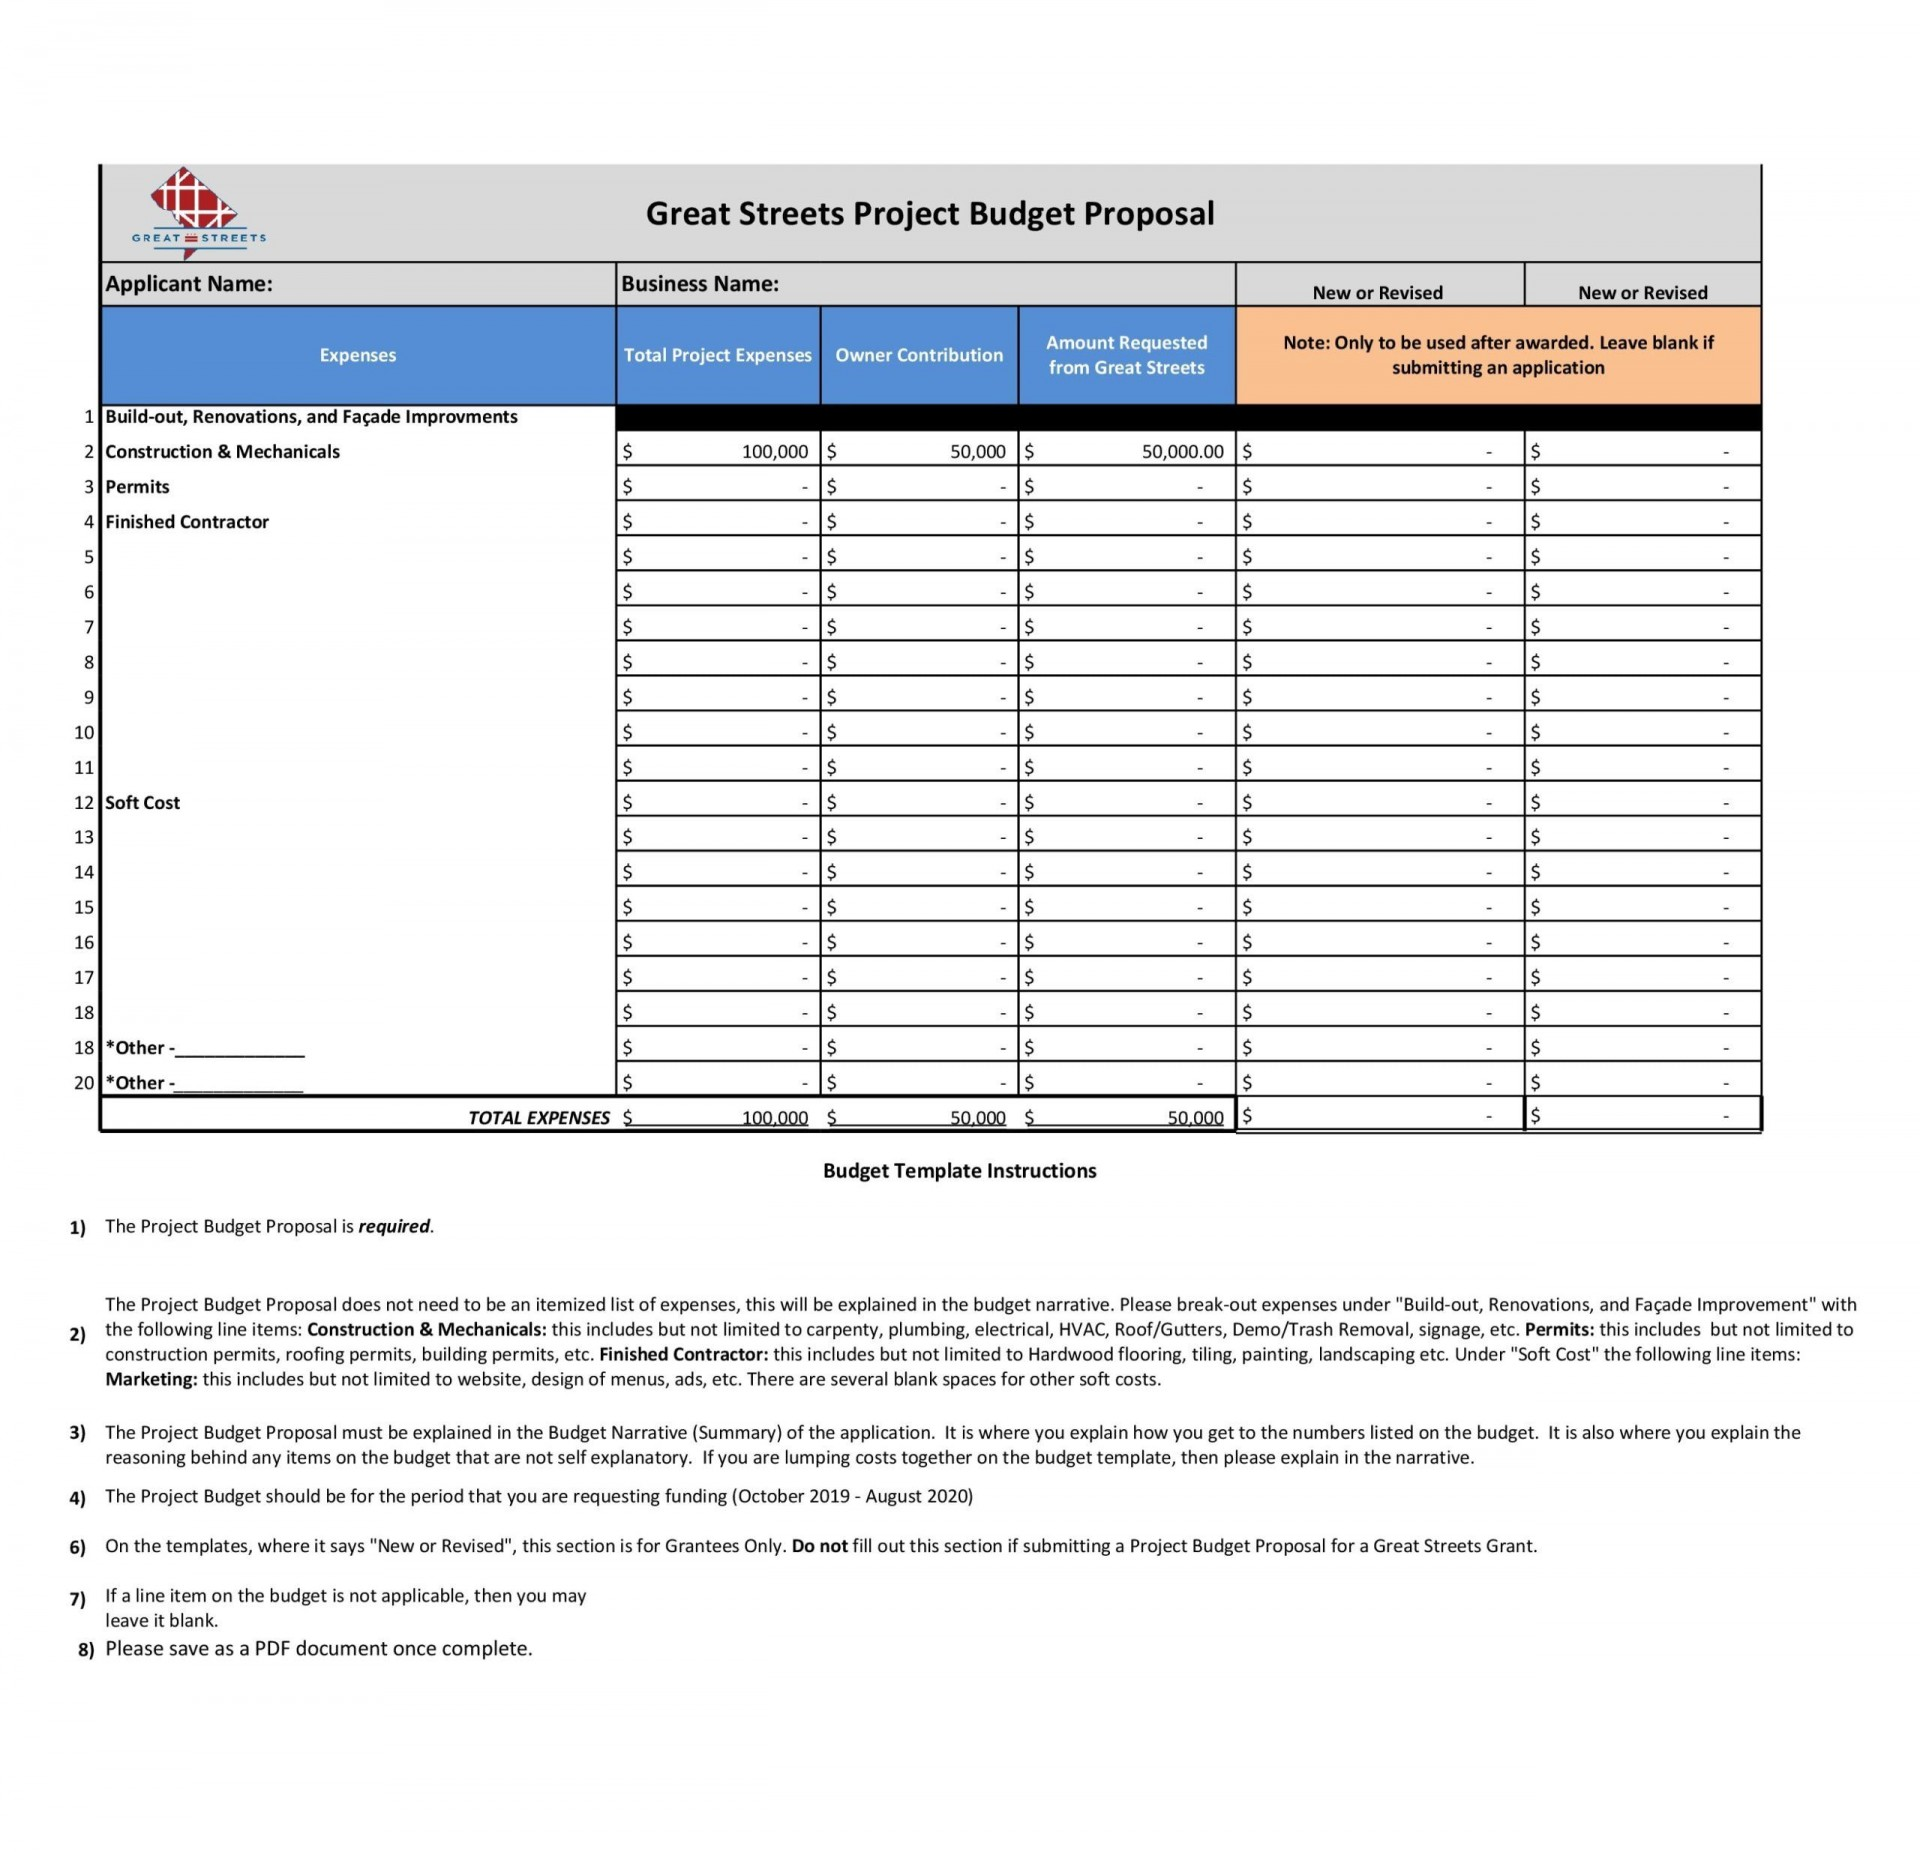 009 Fascinating Line Item Budget Spreadsheet High Definition  Template Word Free1920